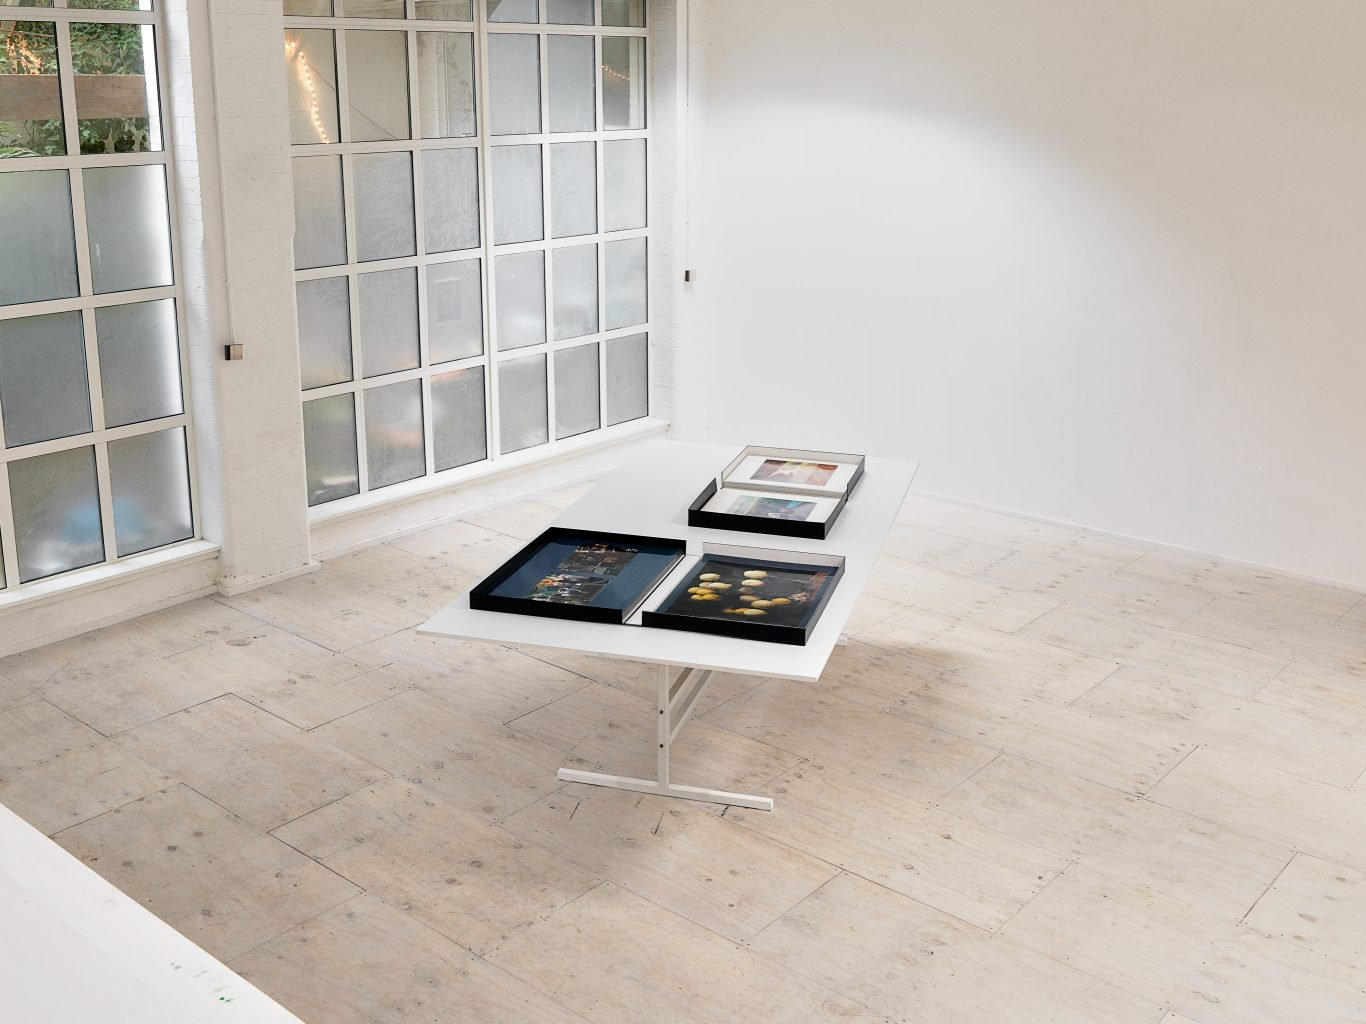 The Parallax' at  Woodmill Projects – 'The Floating World' (Michael Heilgemeir) and 'The Legal Alien' (Keisuke Kamiyama)